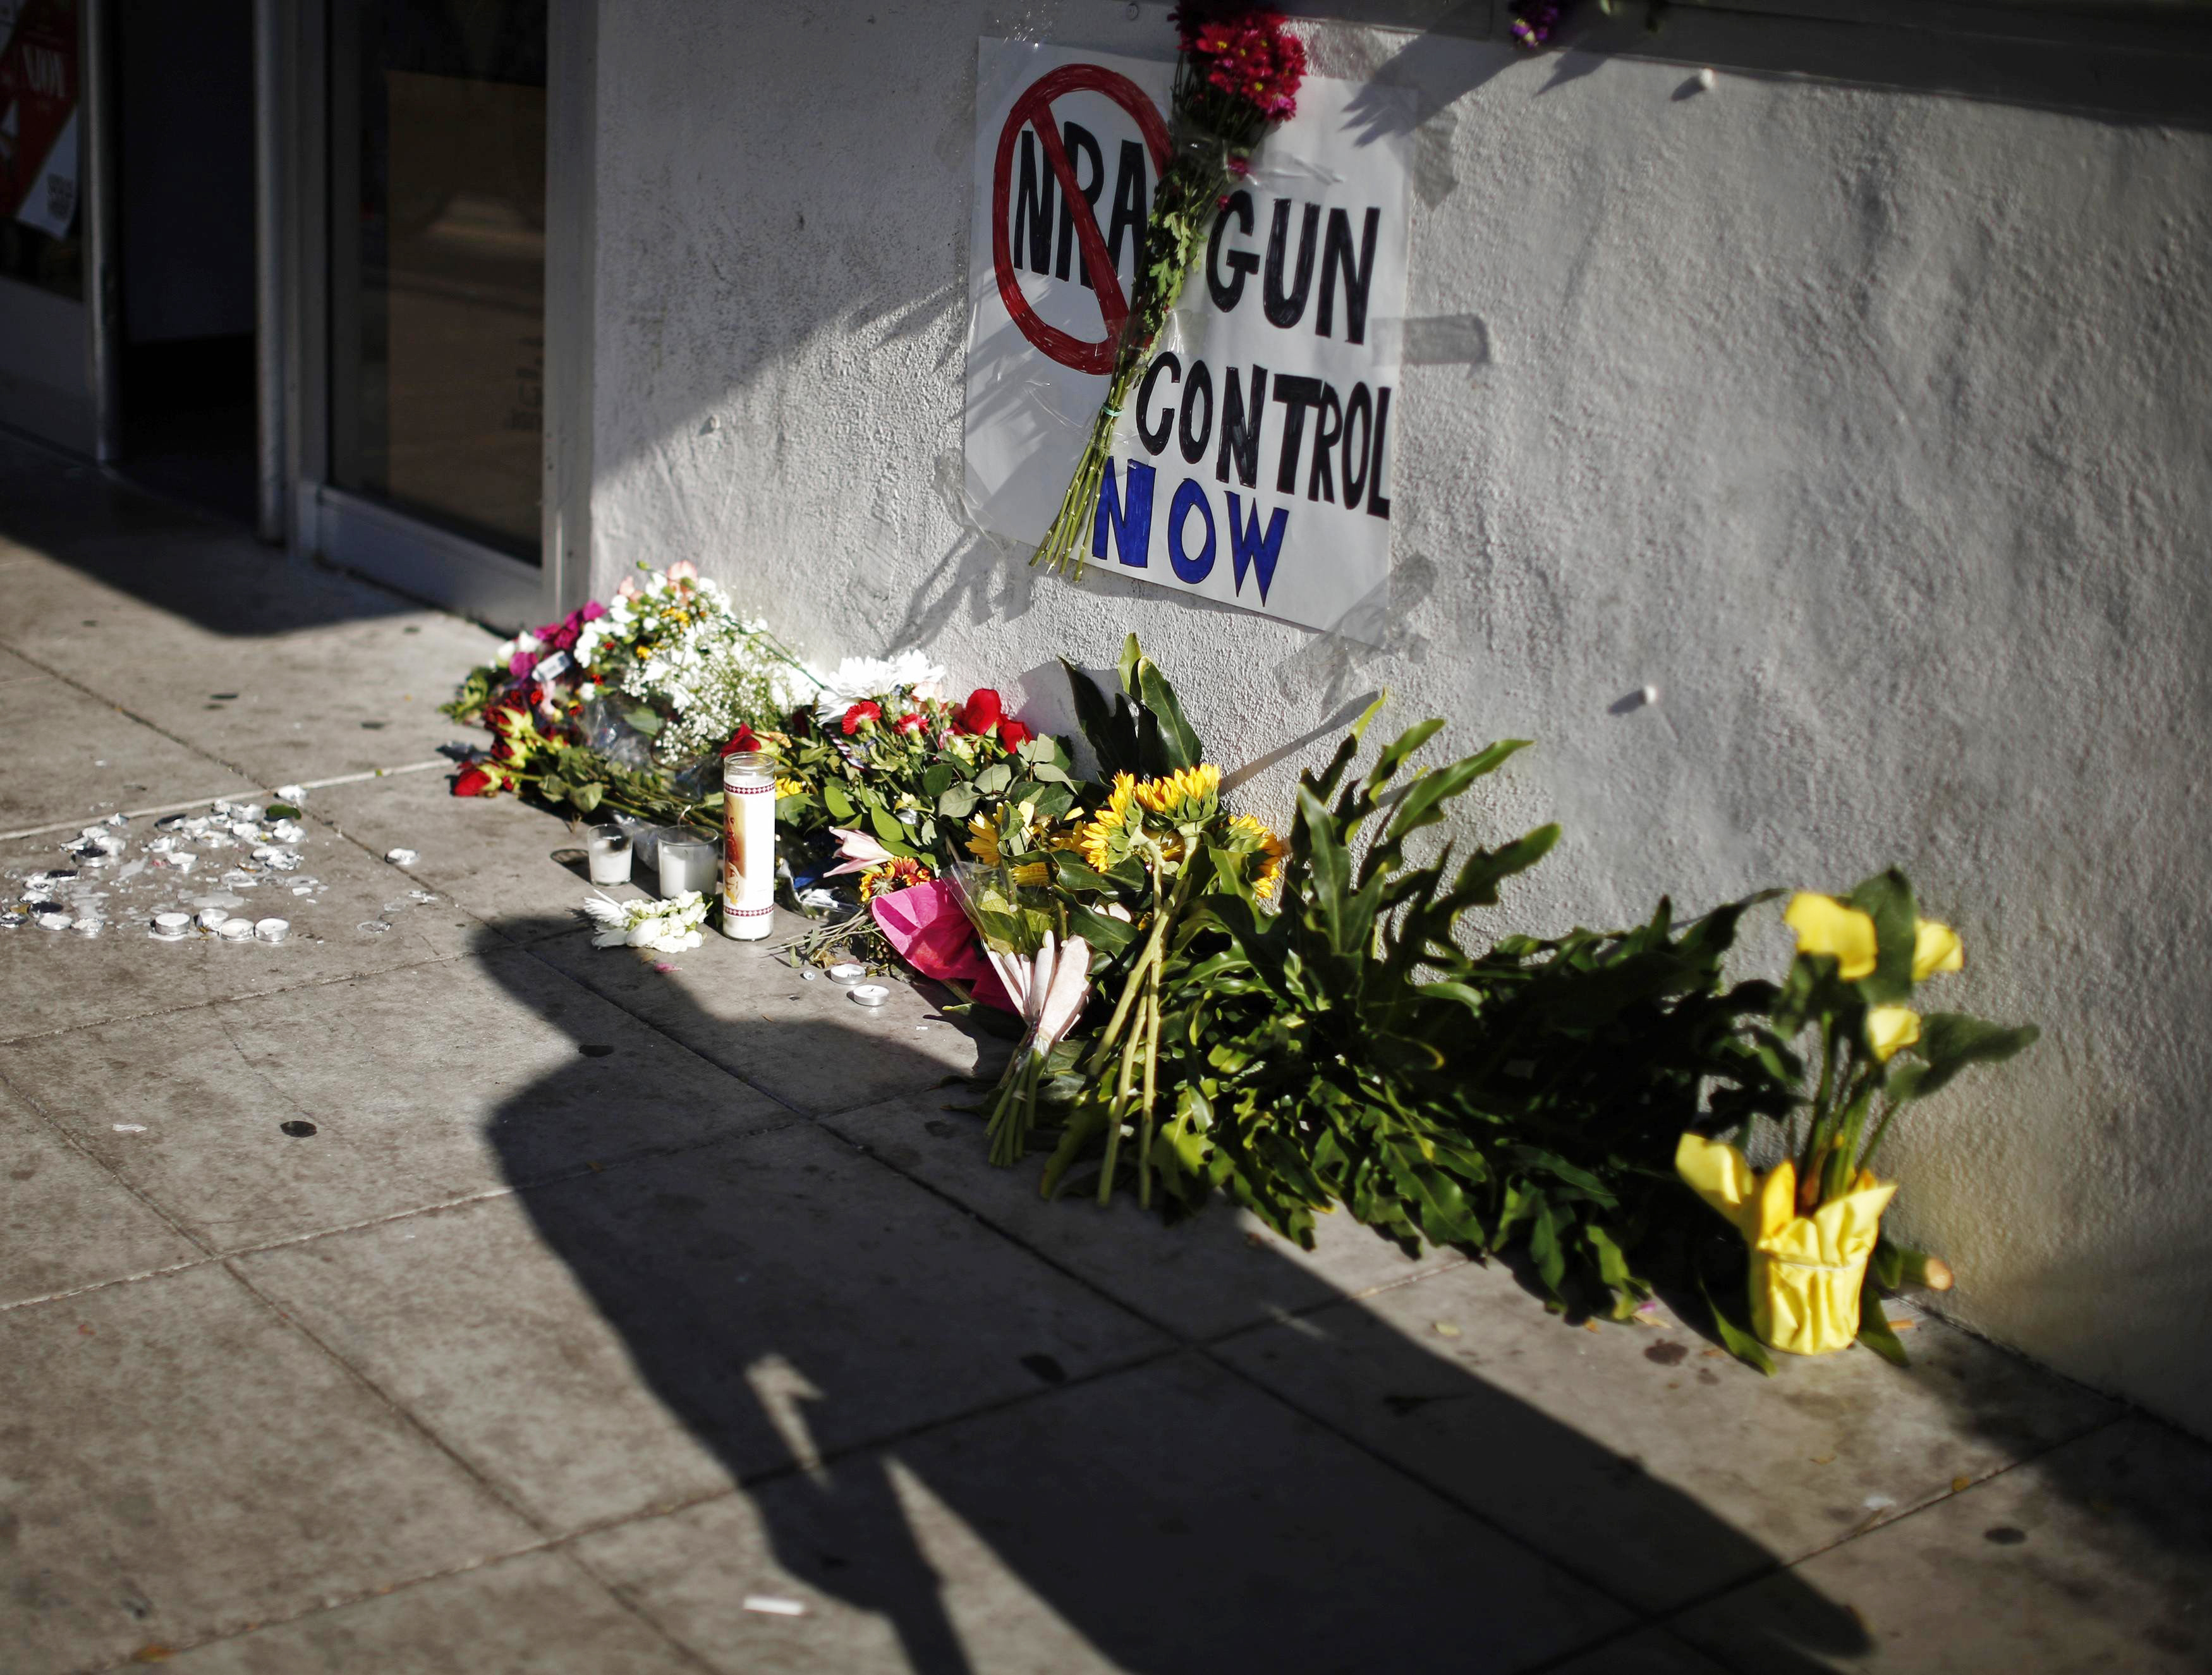 A sign advocating gun control is seen on a makeshift memorial for 20-year-old UCSB student Christopher Michael-Martinez outside a deli that was one of nine crime scenes after a series of drive-by shootings that left 7 people dead in the Isla Vista neighborhood of Santa Barbara, Calif. May 25, 2014.